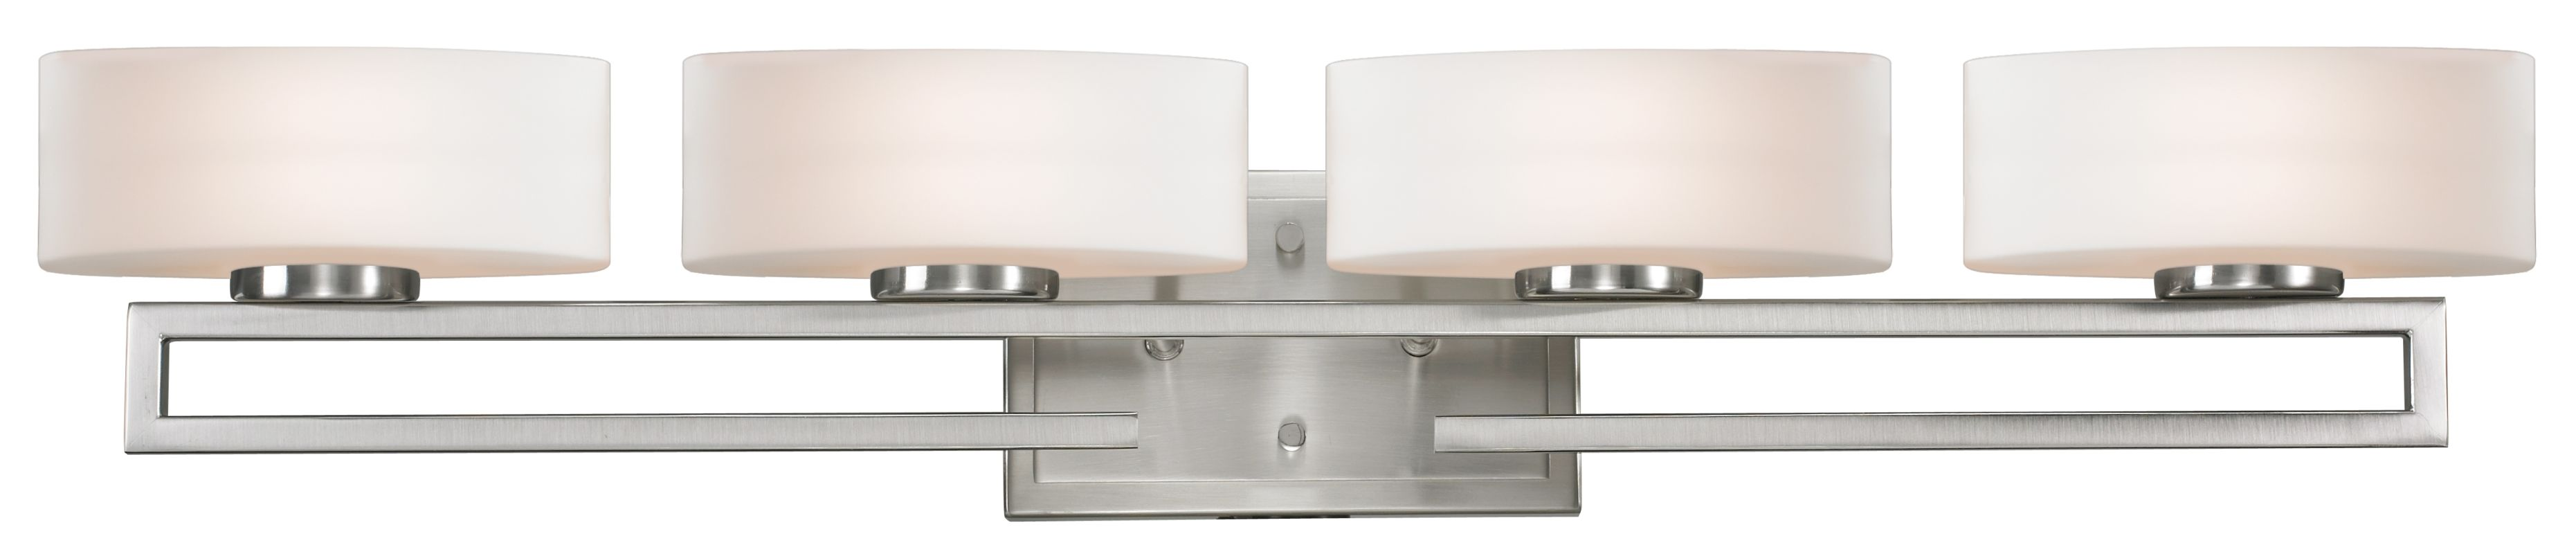 Vanity Lights Clip On : Zlite 30104v Brushed Nickel Vanity Light This Set Of Four Vanity Lights Sits On A Cutaway Rail